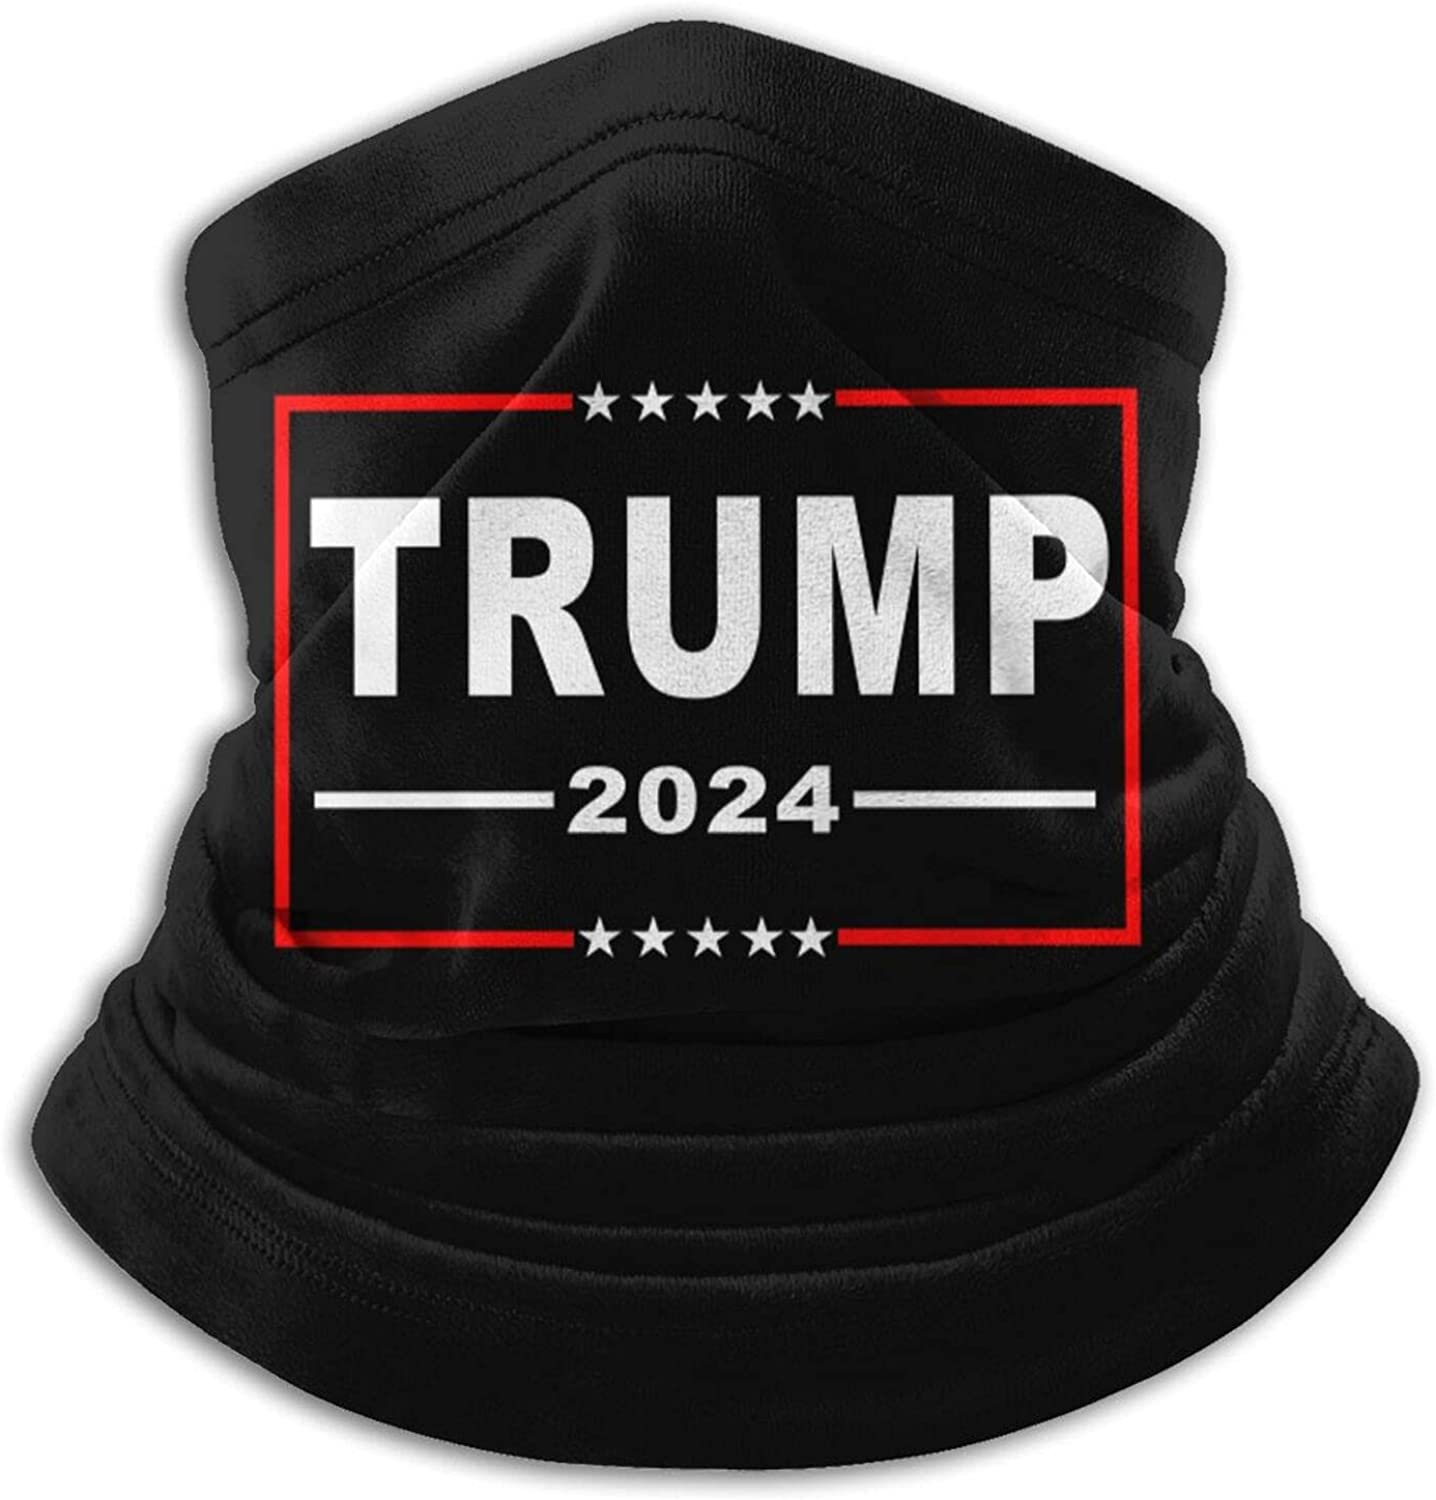 Trump-2024 unisex winter neck gaiter face cover mask, windproof balaclava scarf for fishing, running & hiking